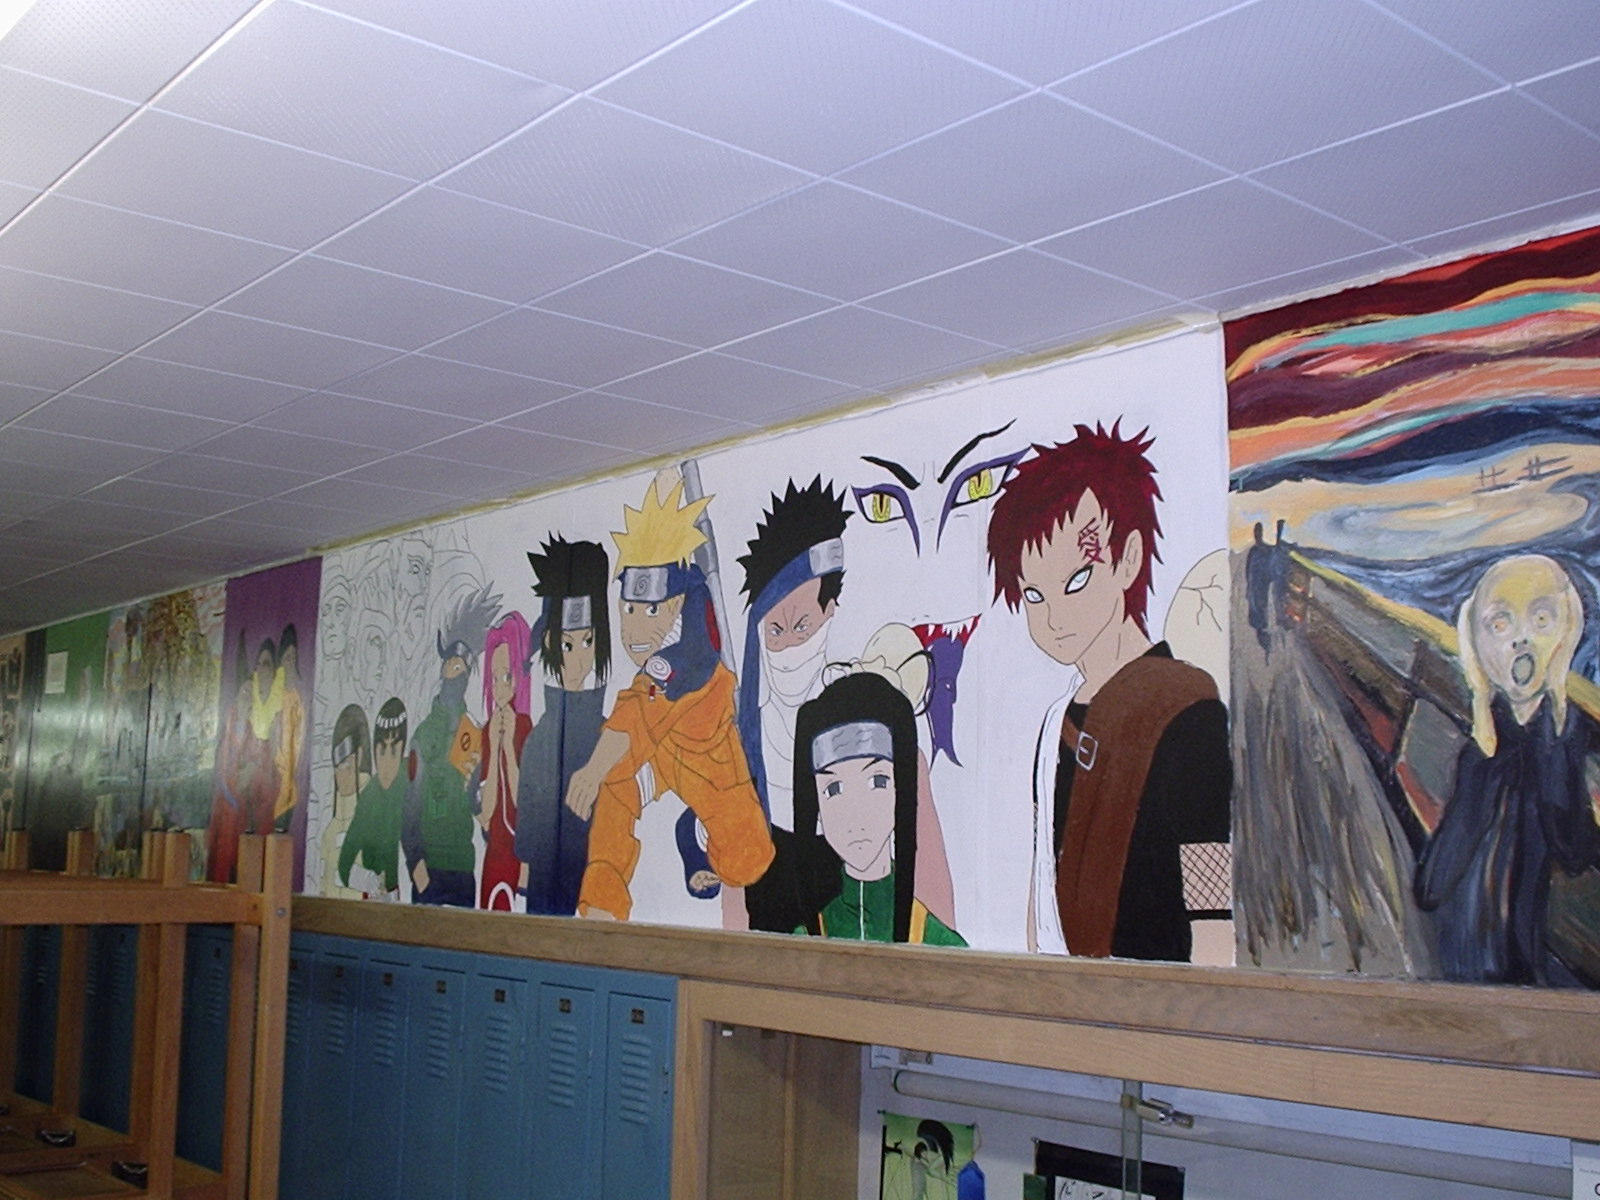 naruto mural by animatt on deviantart ForMural Naruto